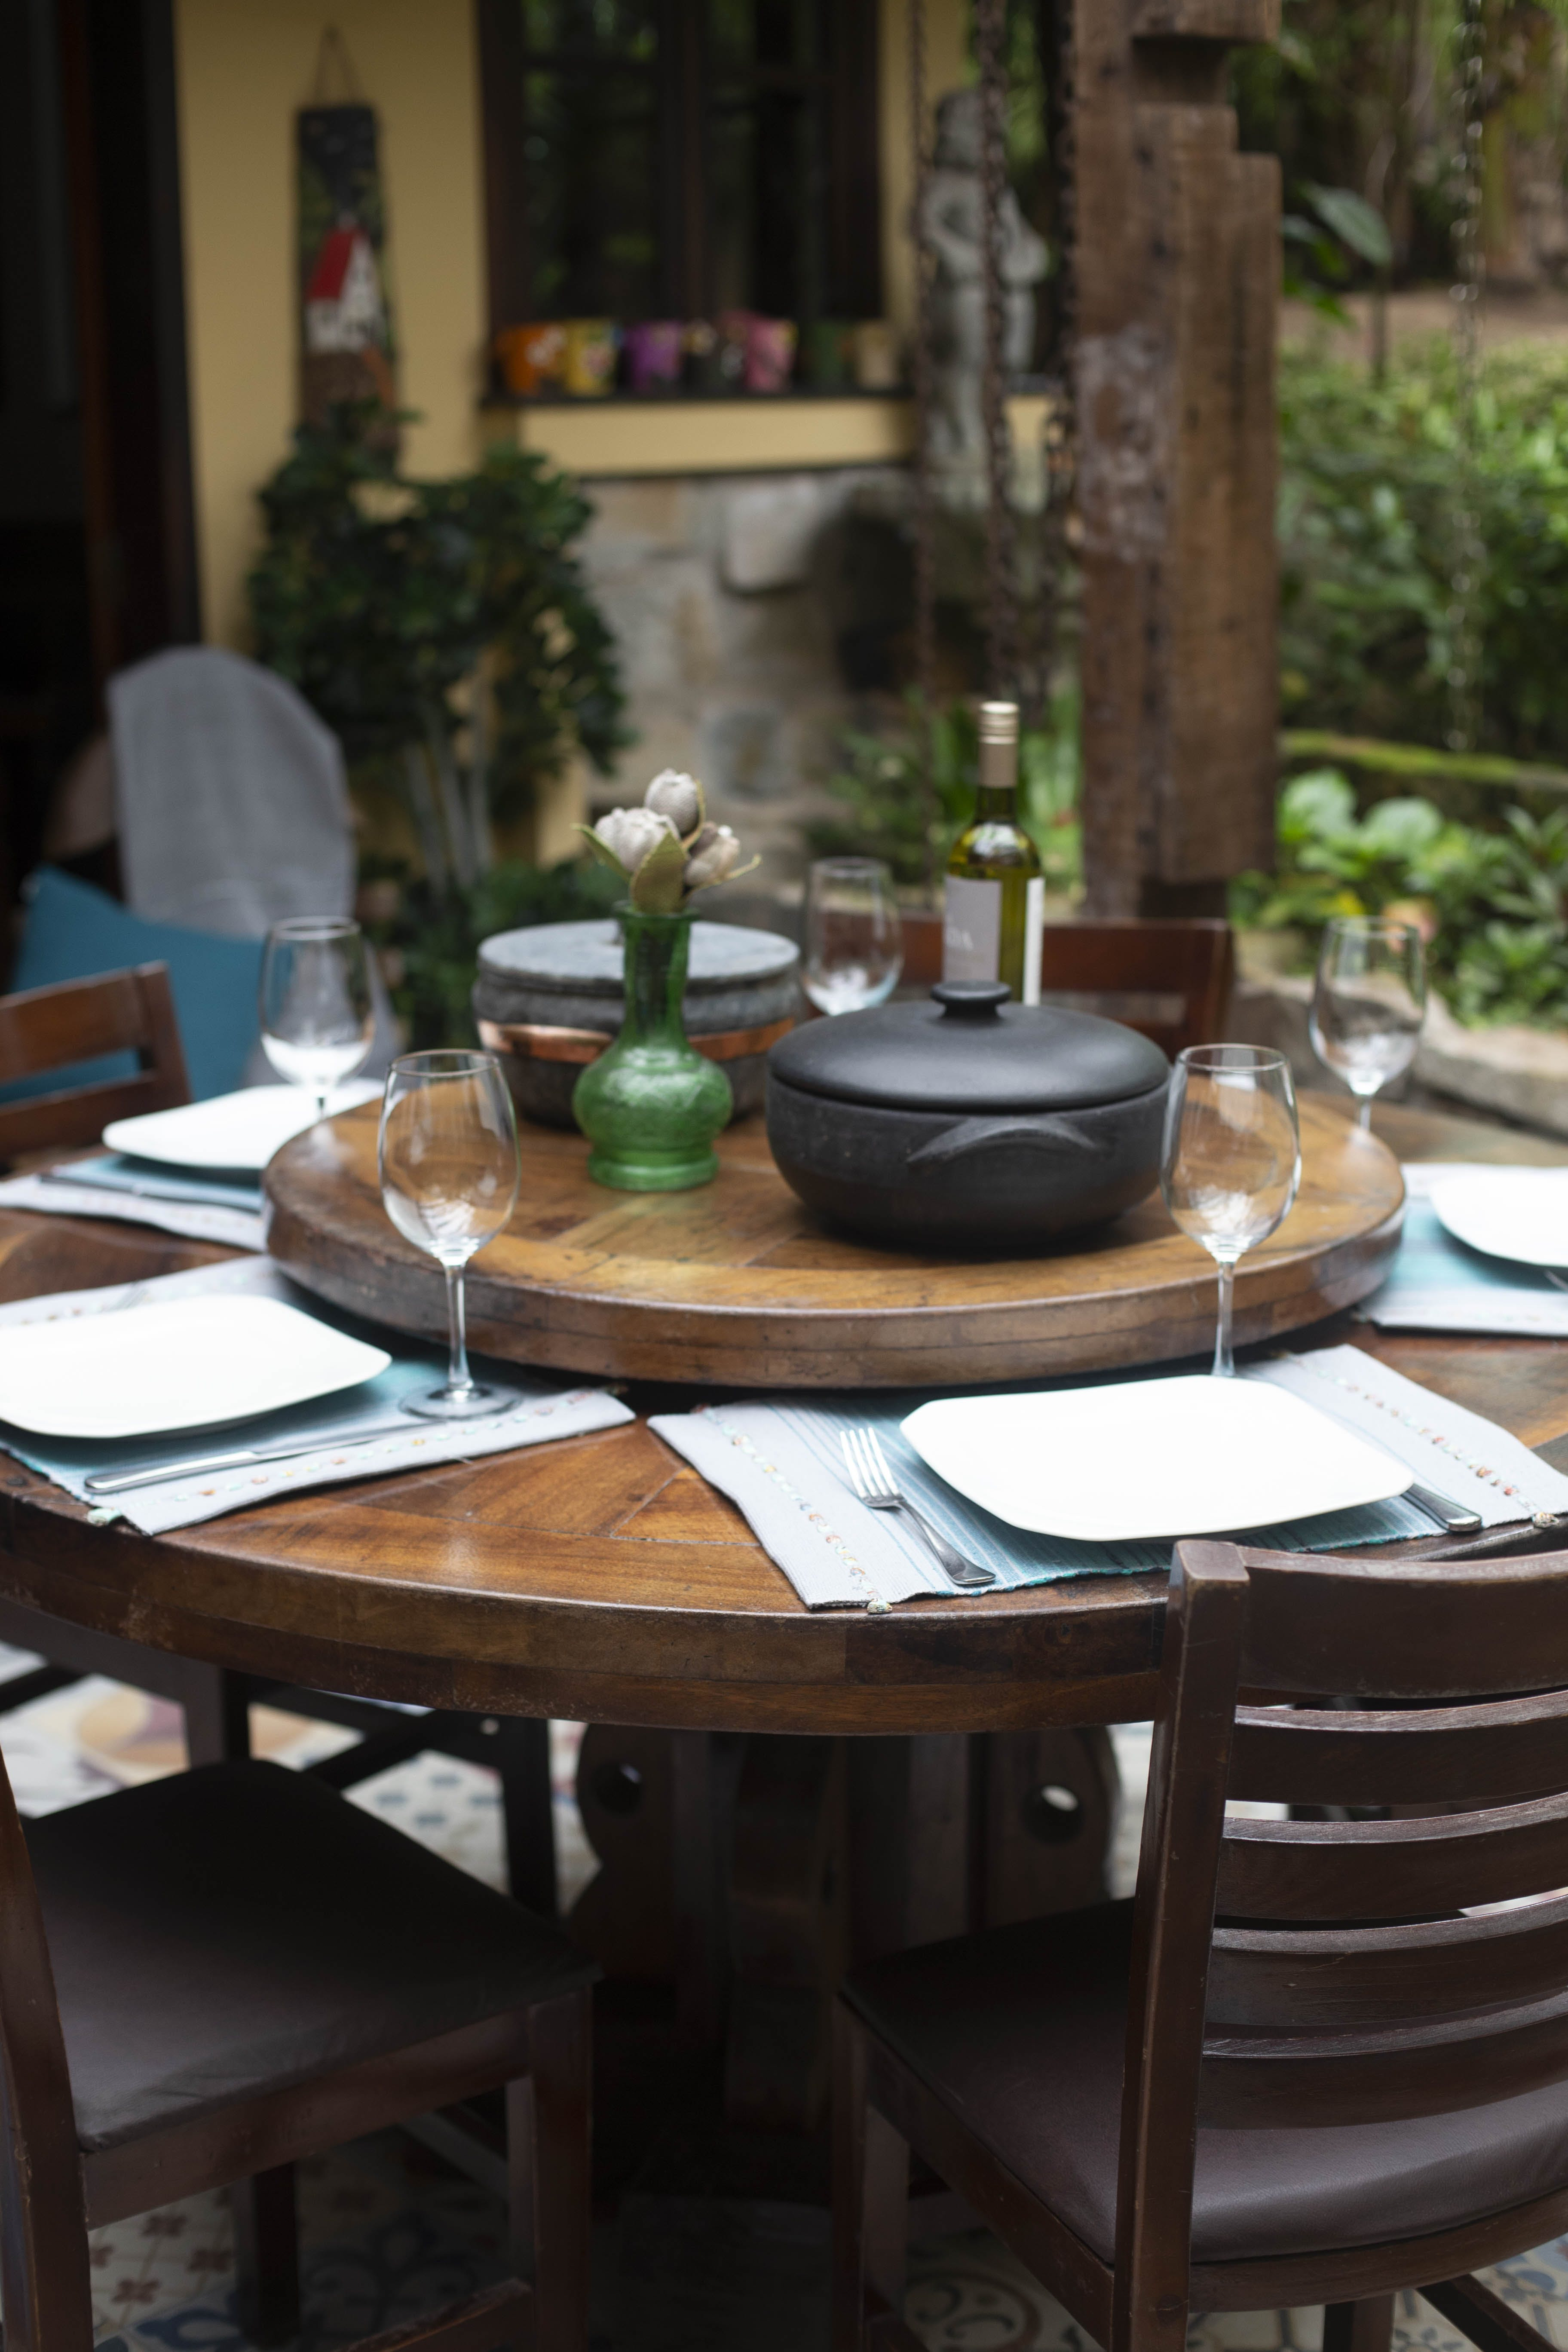 Table Dining Set Up Outdoor